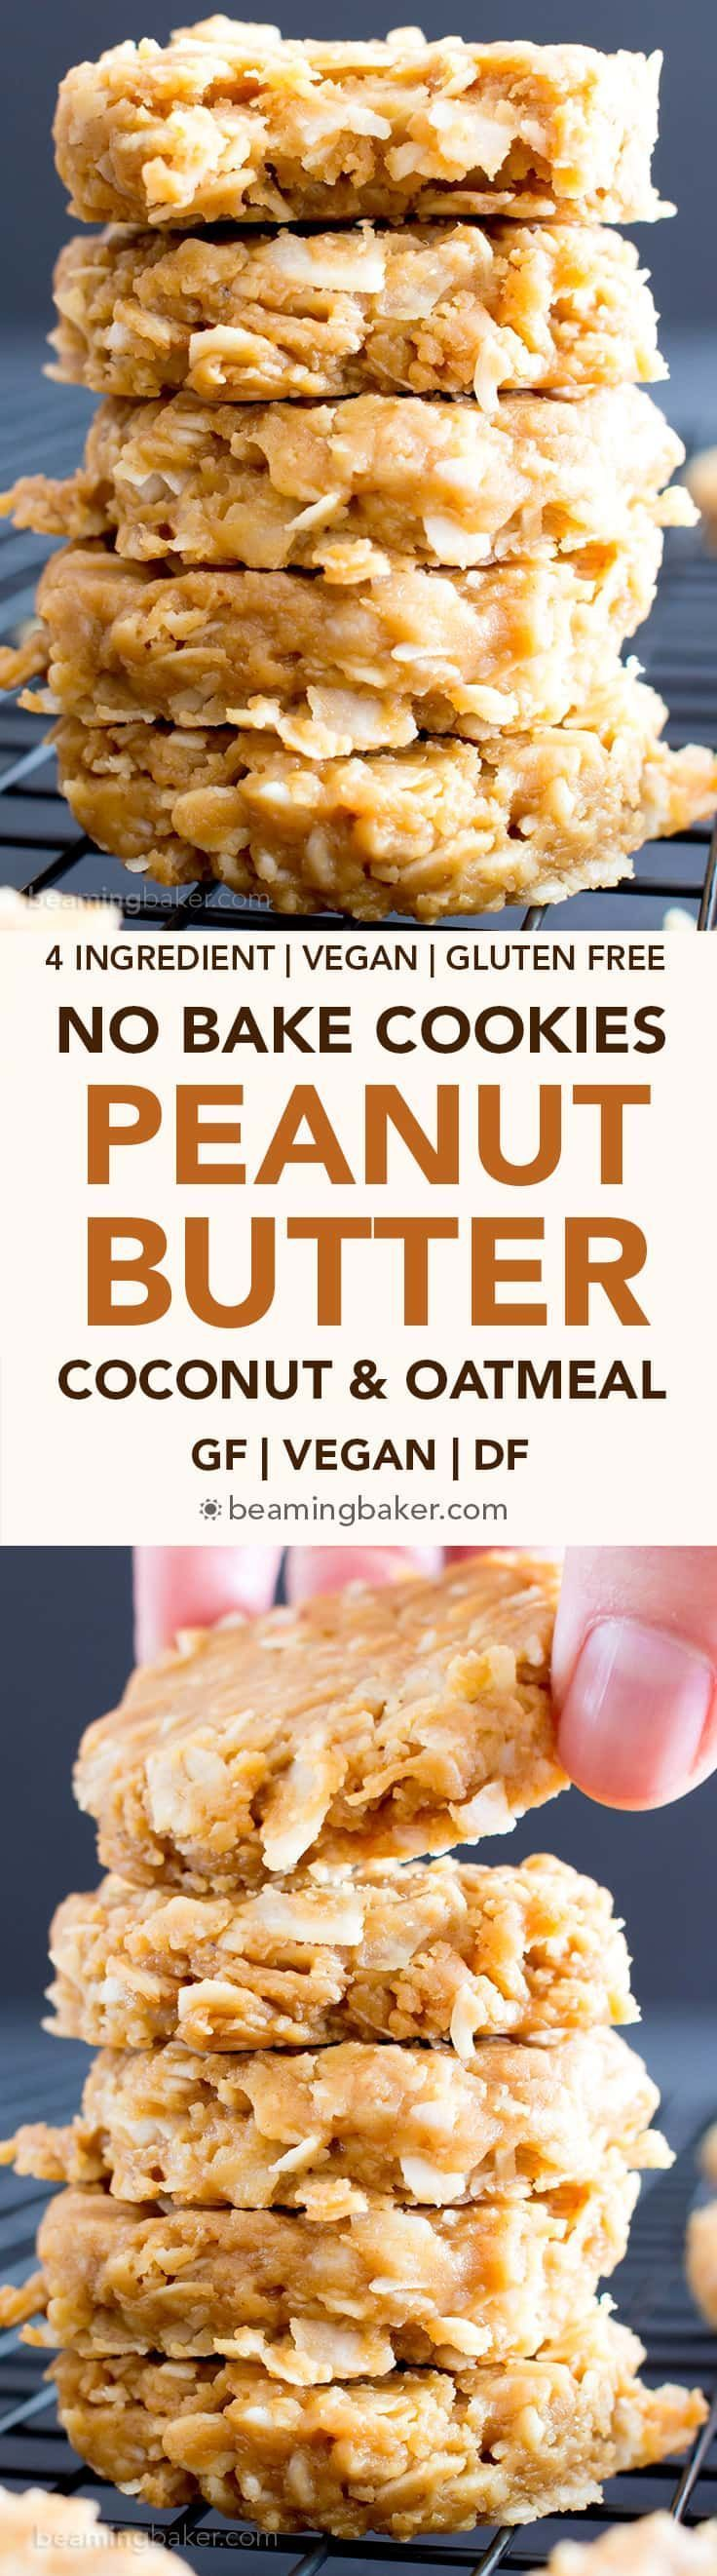 4 Ingredient No Bake Peanut Butter Coconut Oatmeal Cookies (V, GF) ~ A one-bowl recipe for super easy to make peanut butter cookies packed with coconut and oats! Gluten free, vegan, whole grain, and refined sugar free! BeamingBaker.com